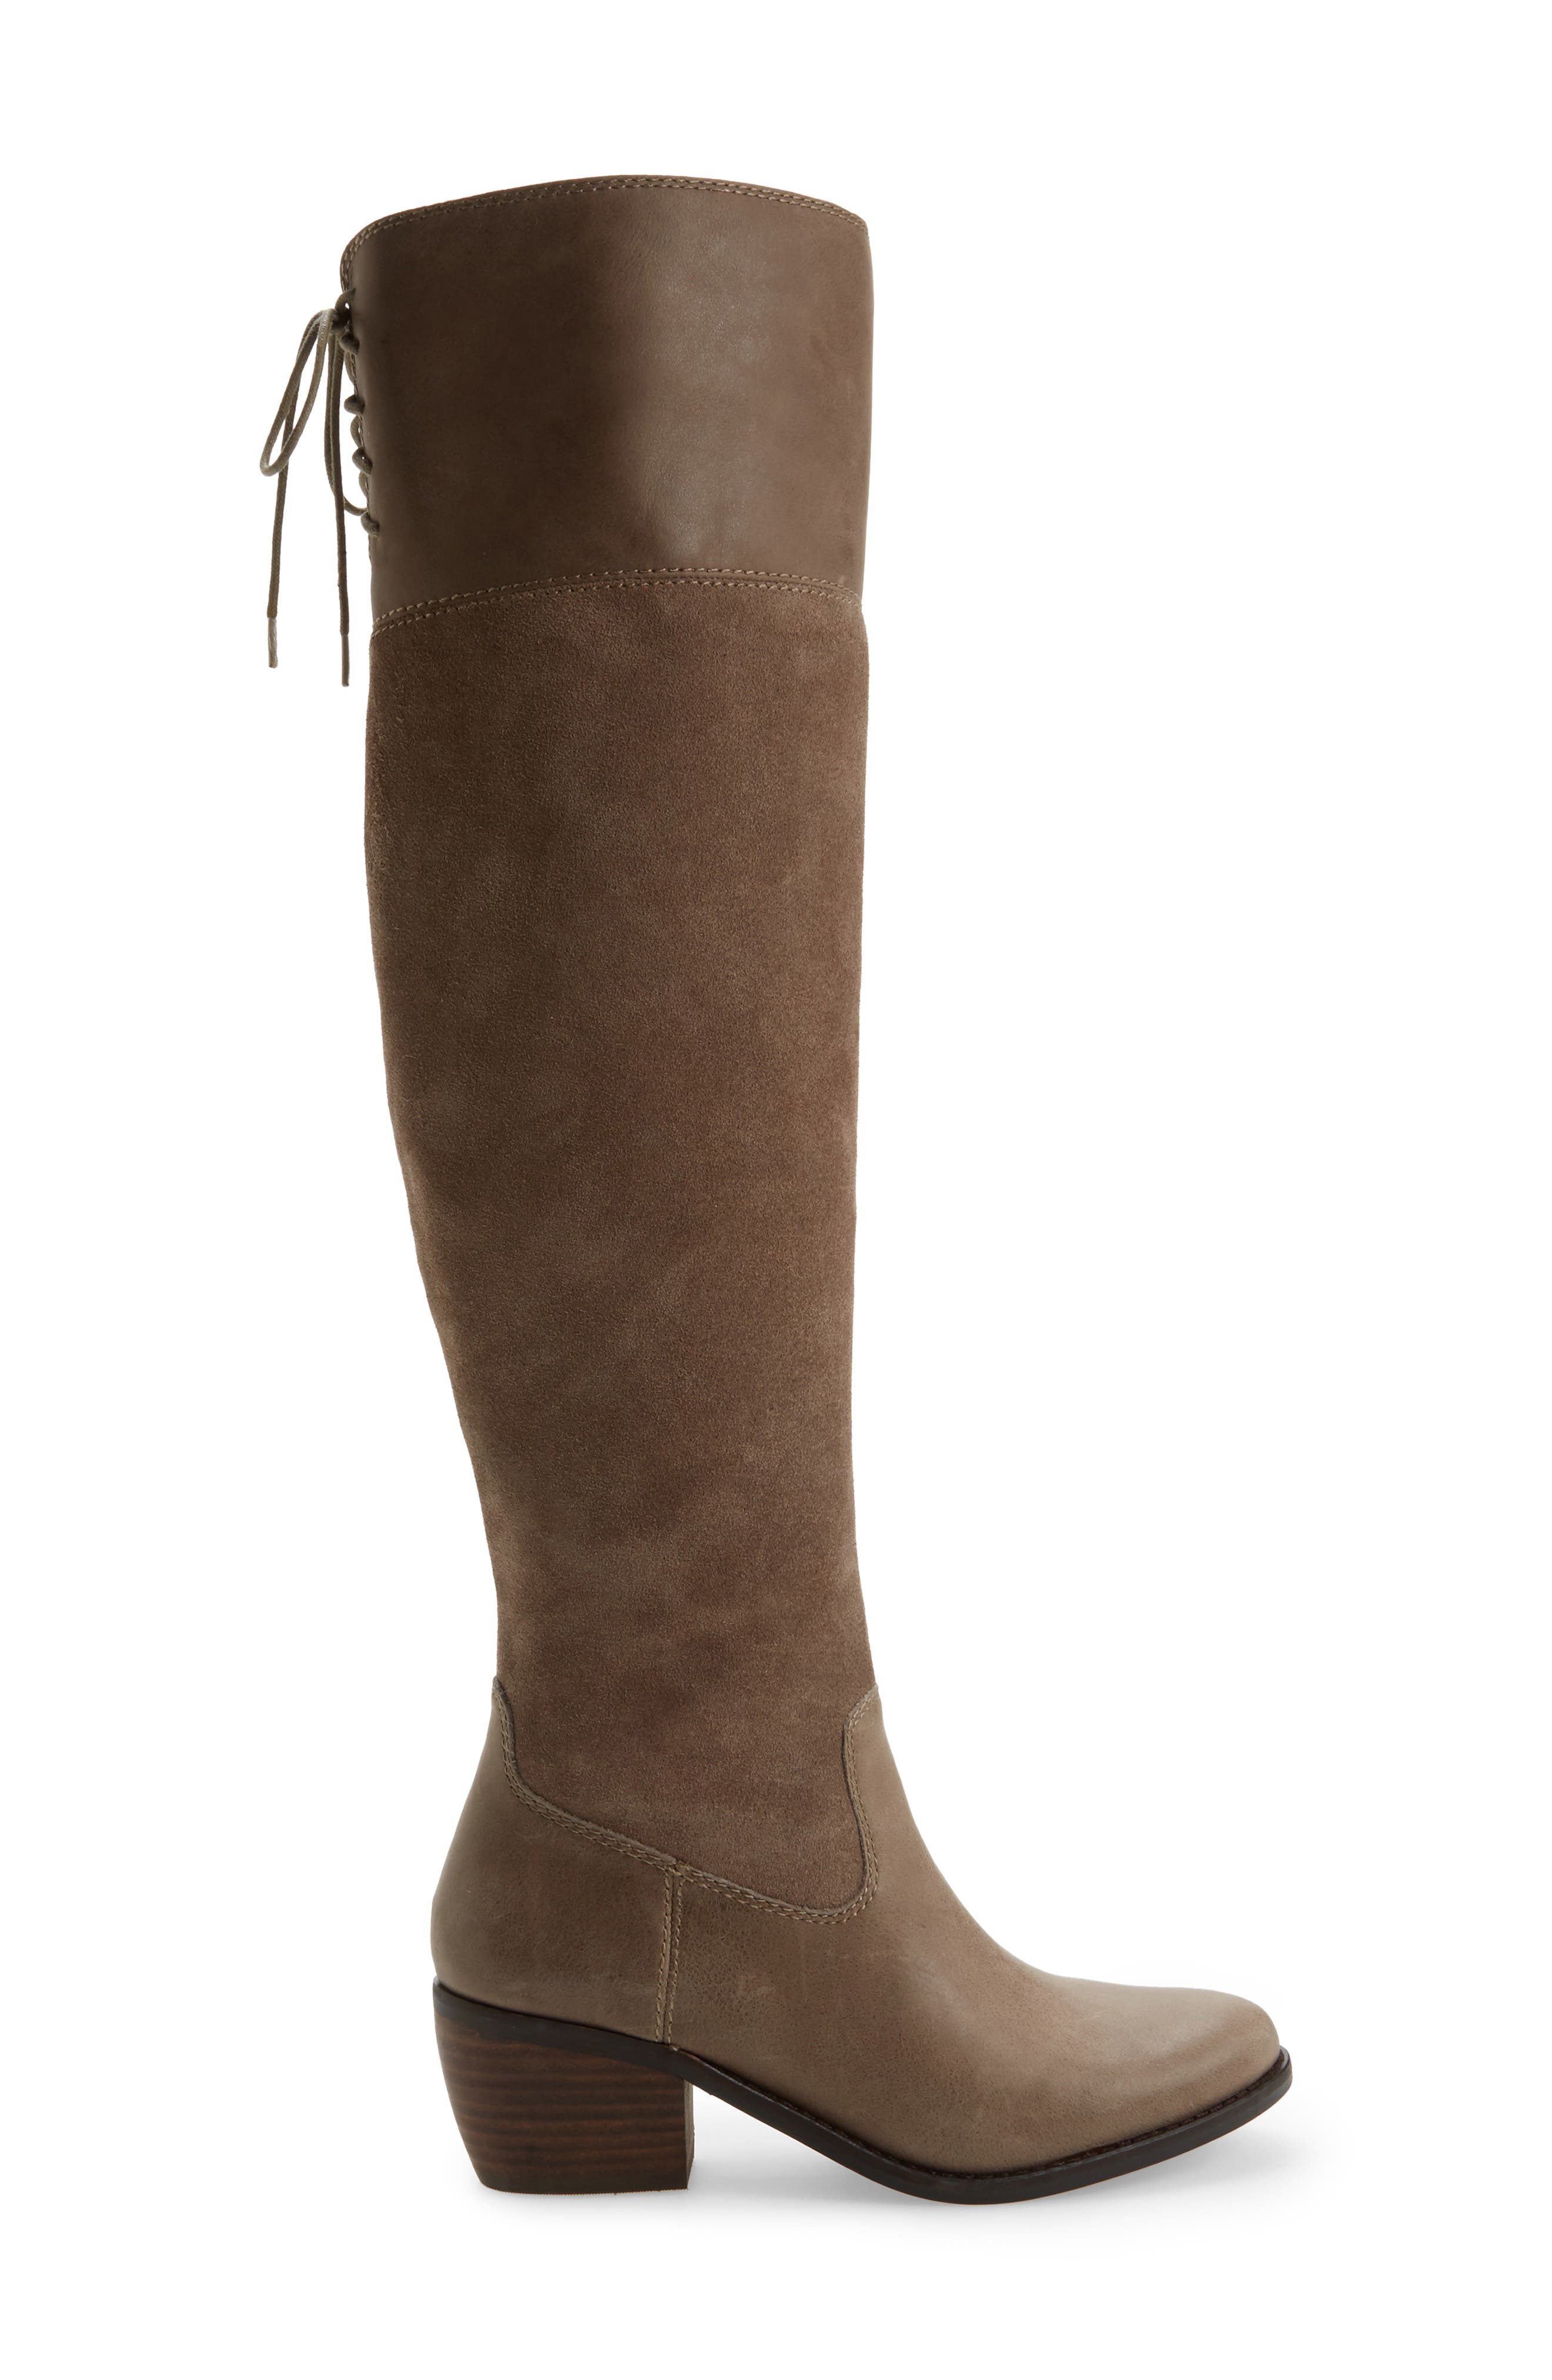 Komah Over the Knee Boot,                             Alternate thumbnail 3, color,                             Brindle Leather